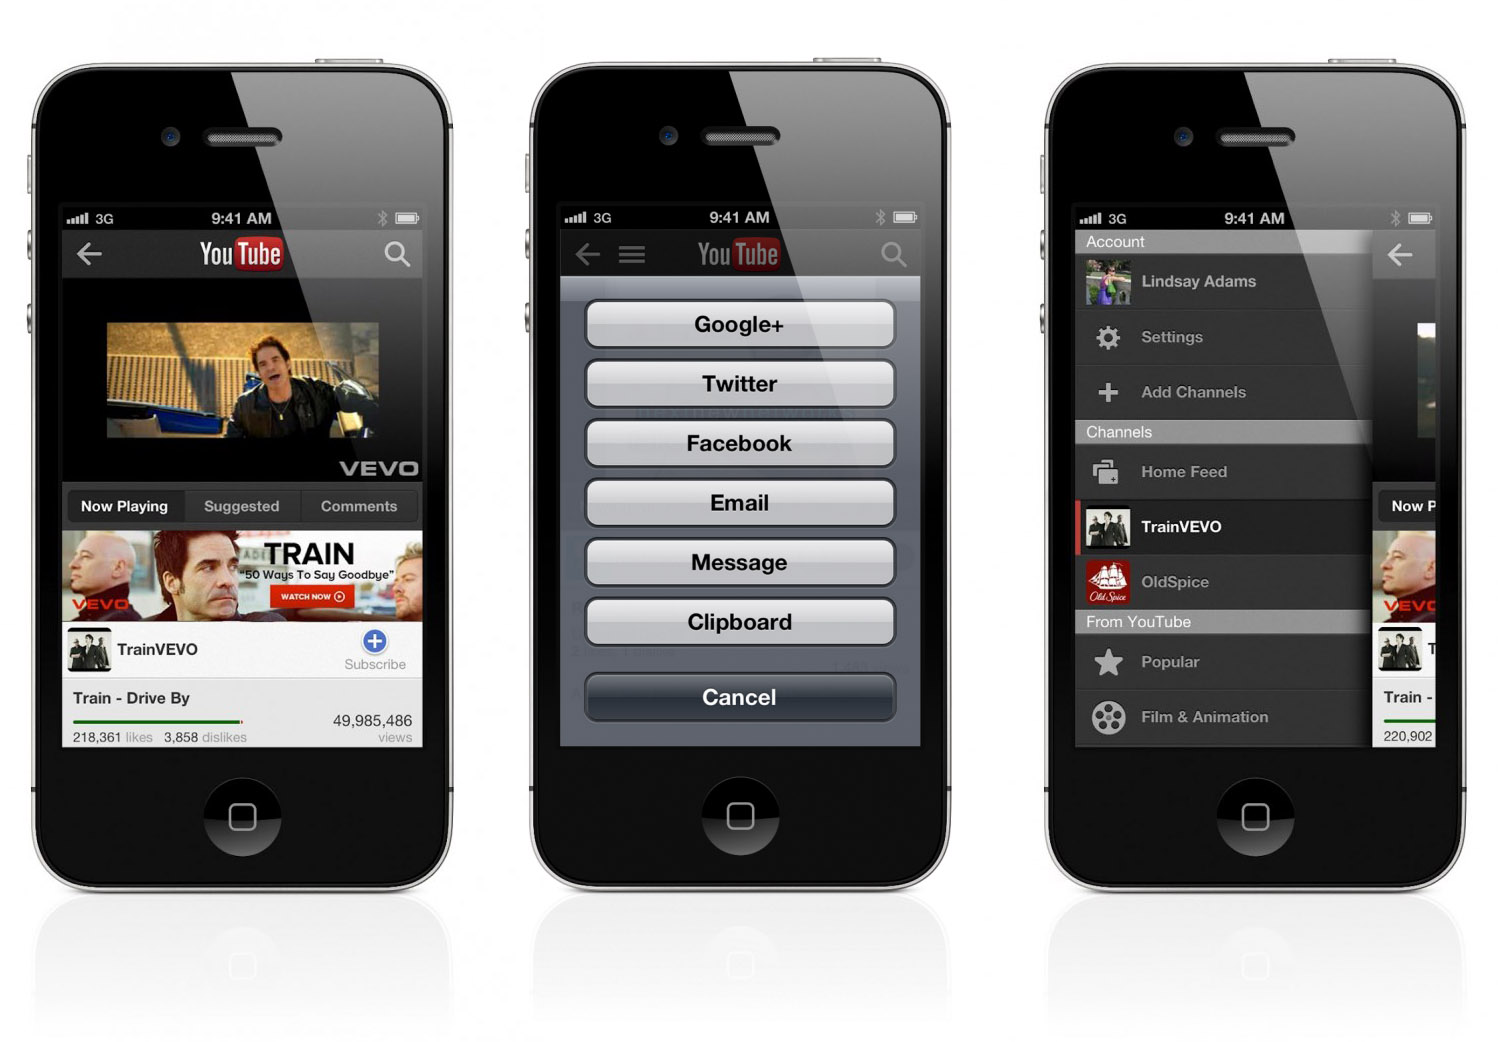 Official youtube app for iphone and ipod touch